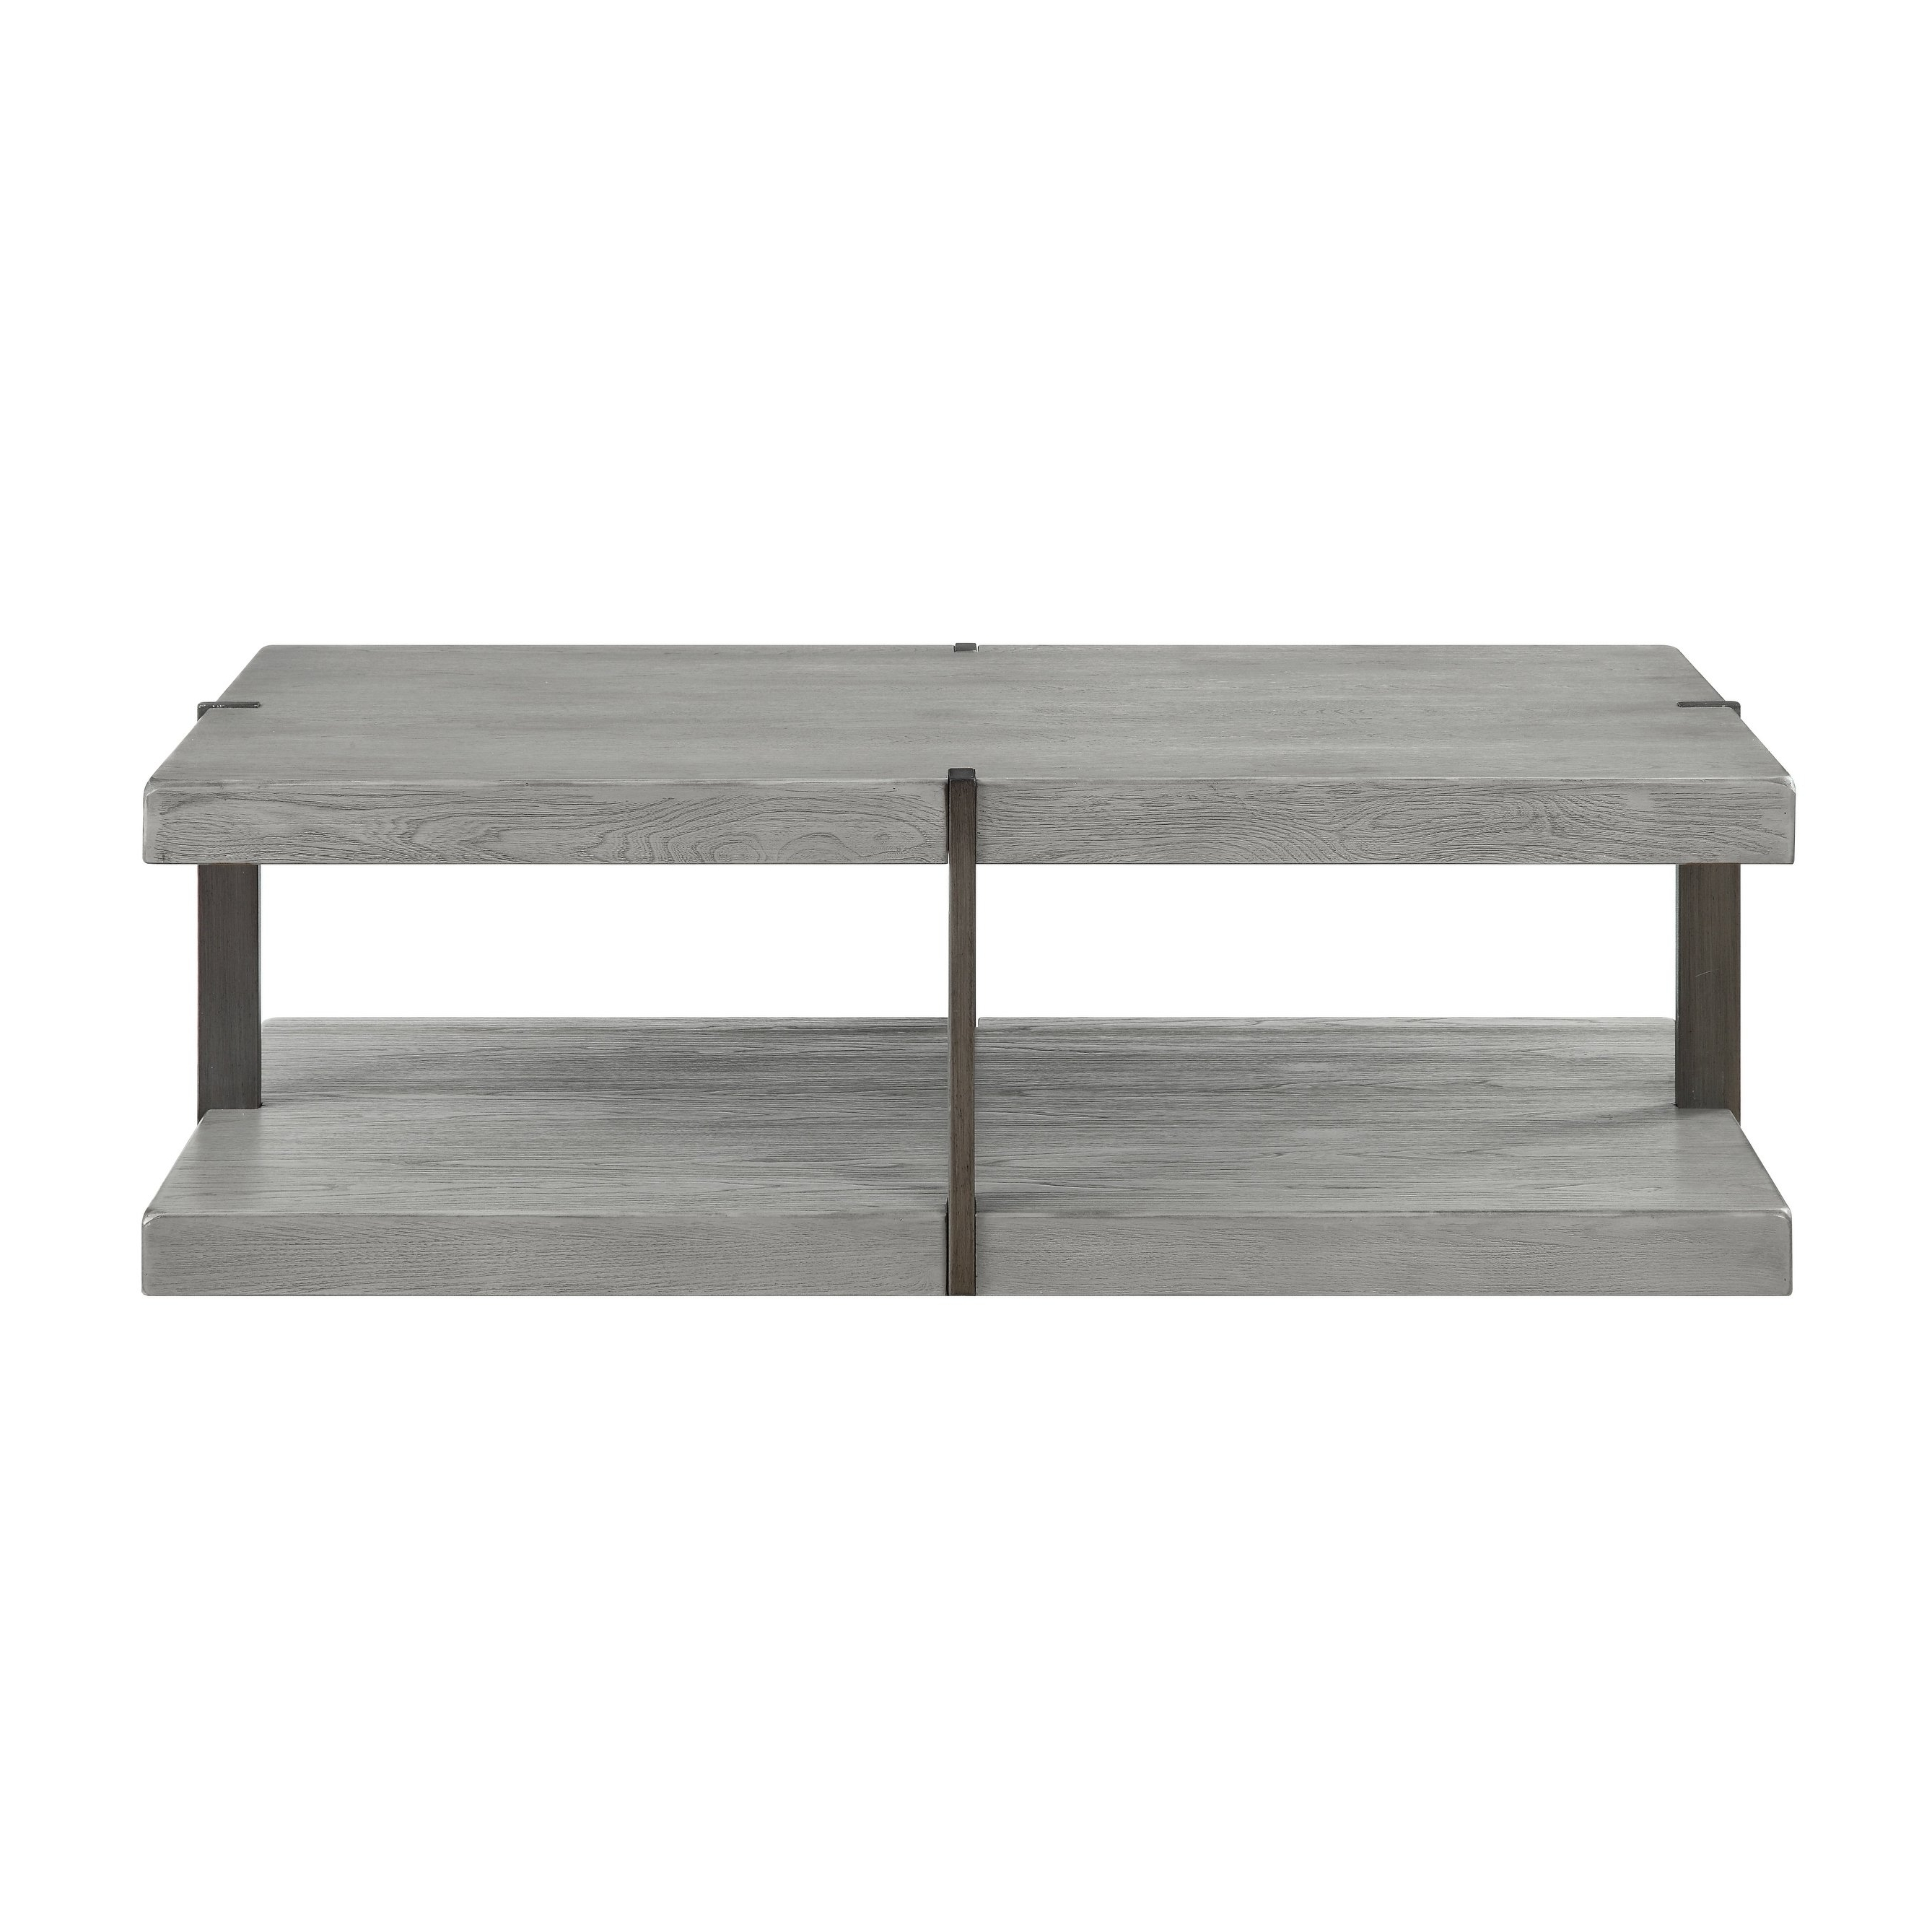 Most Recent Autumn Cocktail Tables With Casters In Shop Somette Fleet Grey Greystone Cocktail Table – Free Shipping (View 12 of 20)